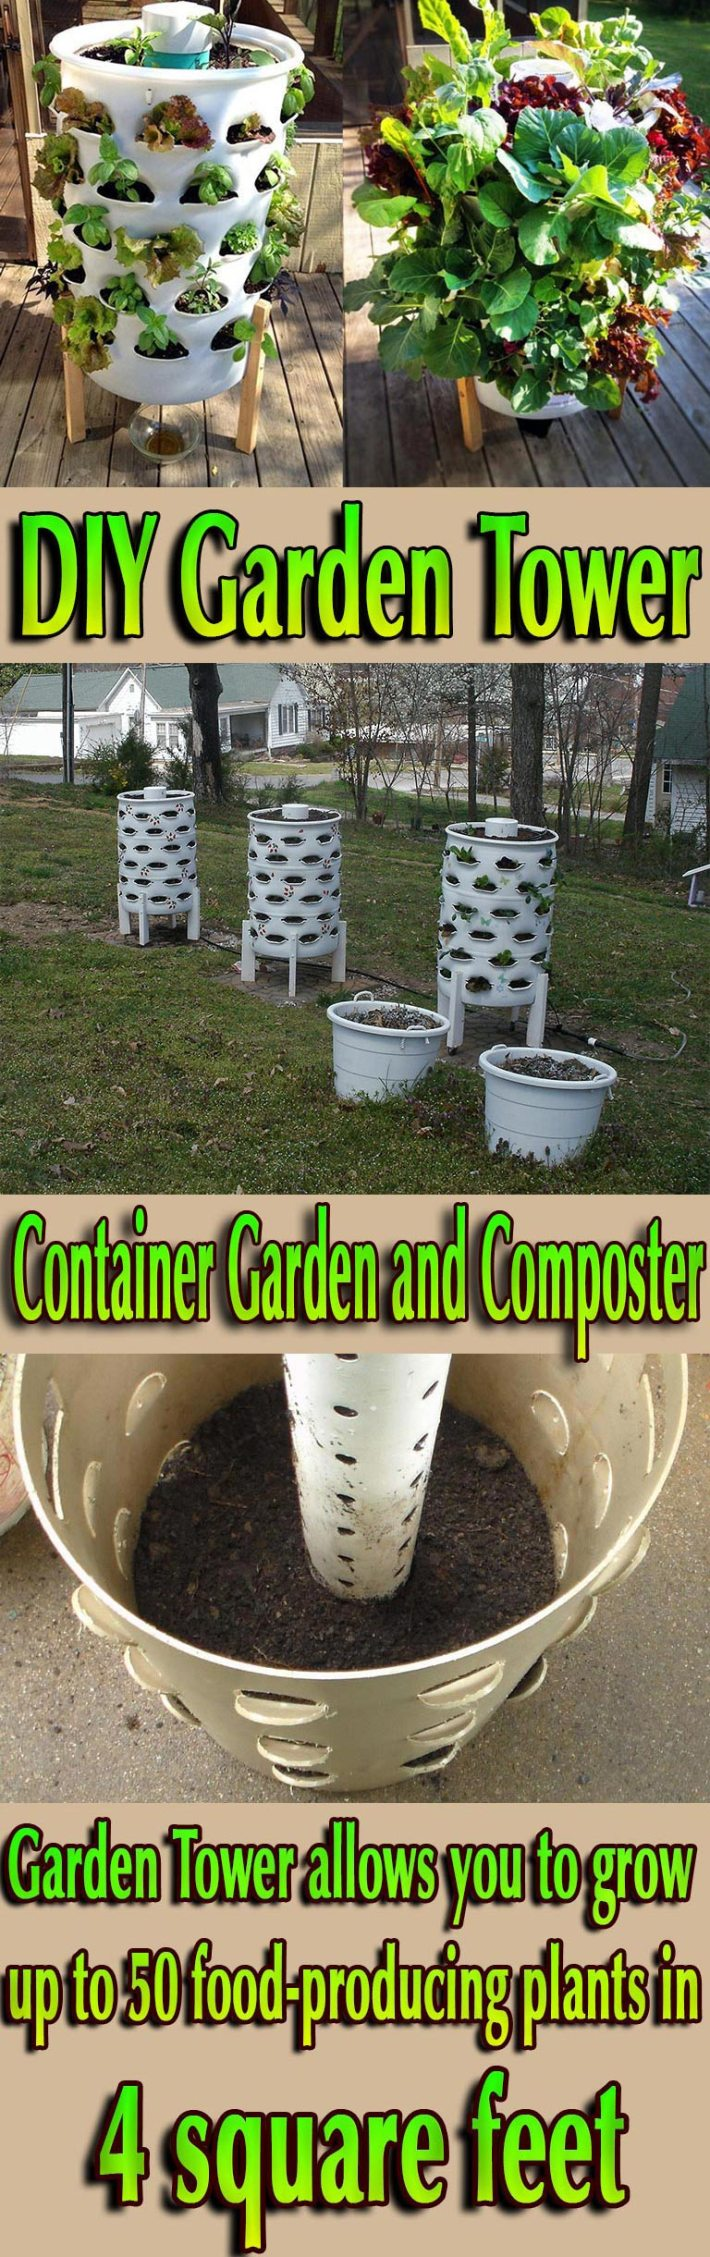 DIY Garden Tower – Container Garden and Composter